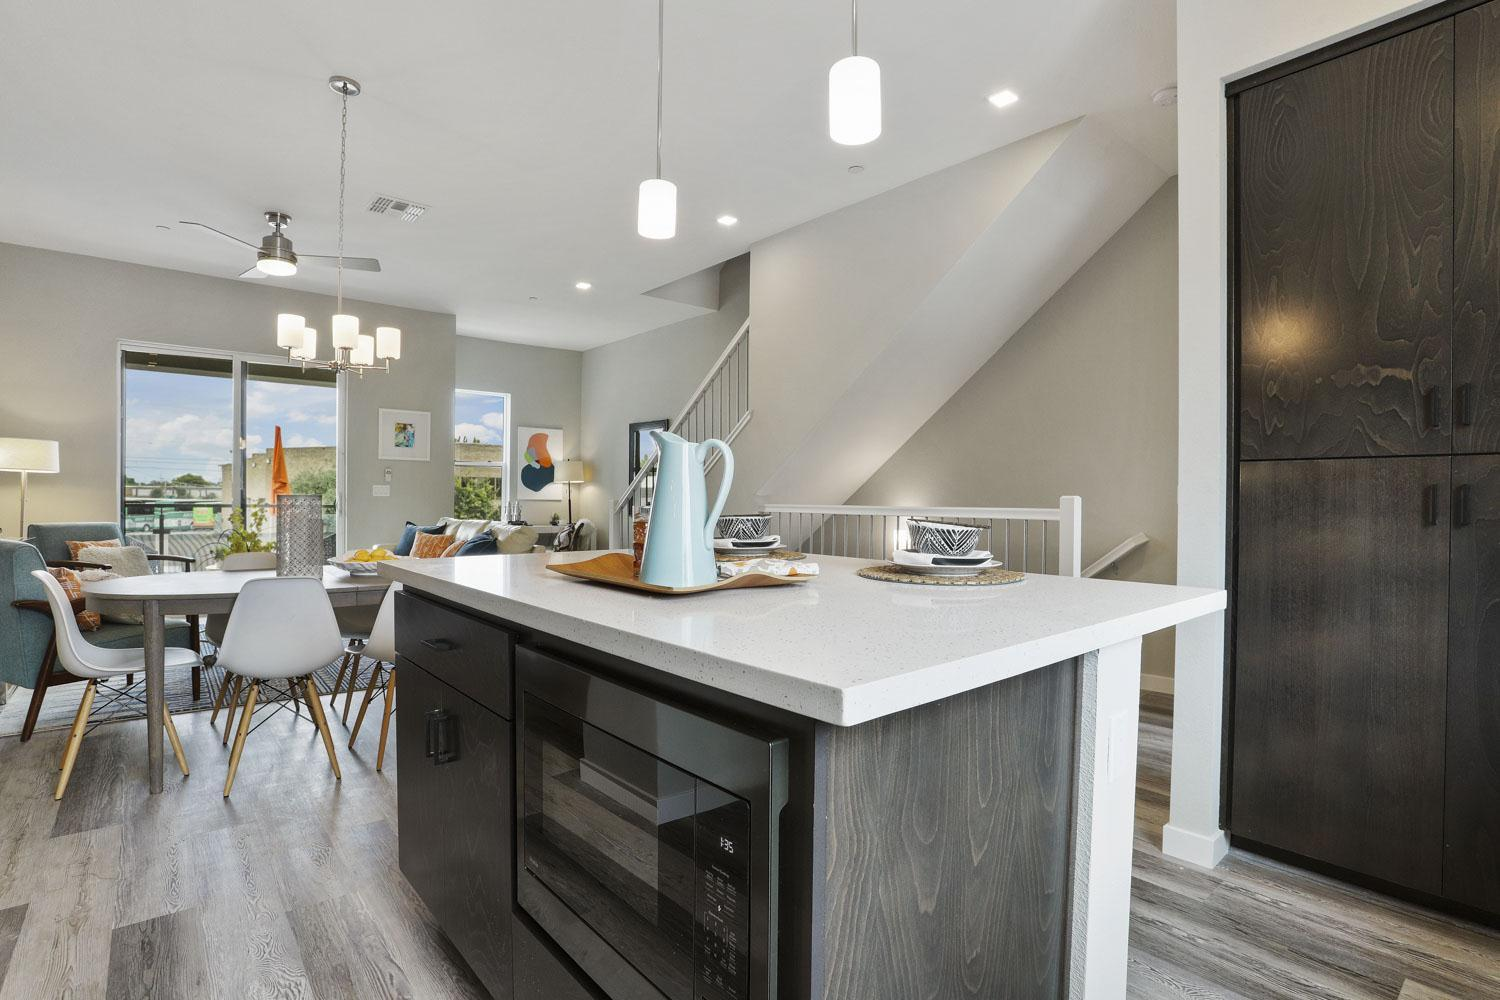 Kitchen featured in the Plan 1 By Next Generation Capital  in Sacramento, CA